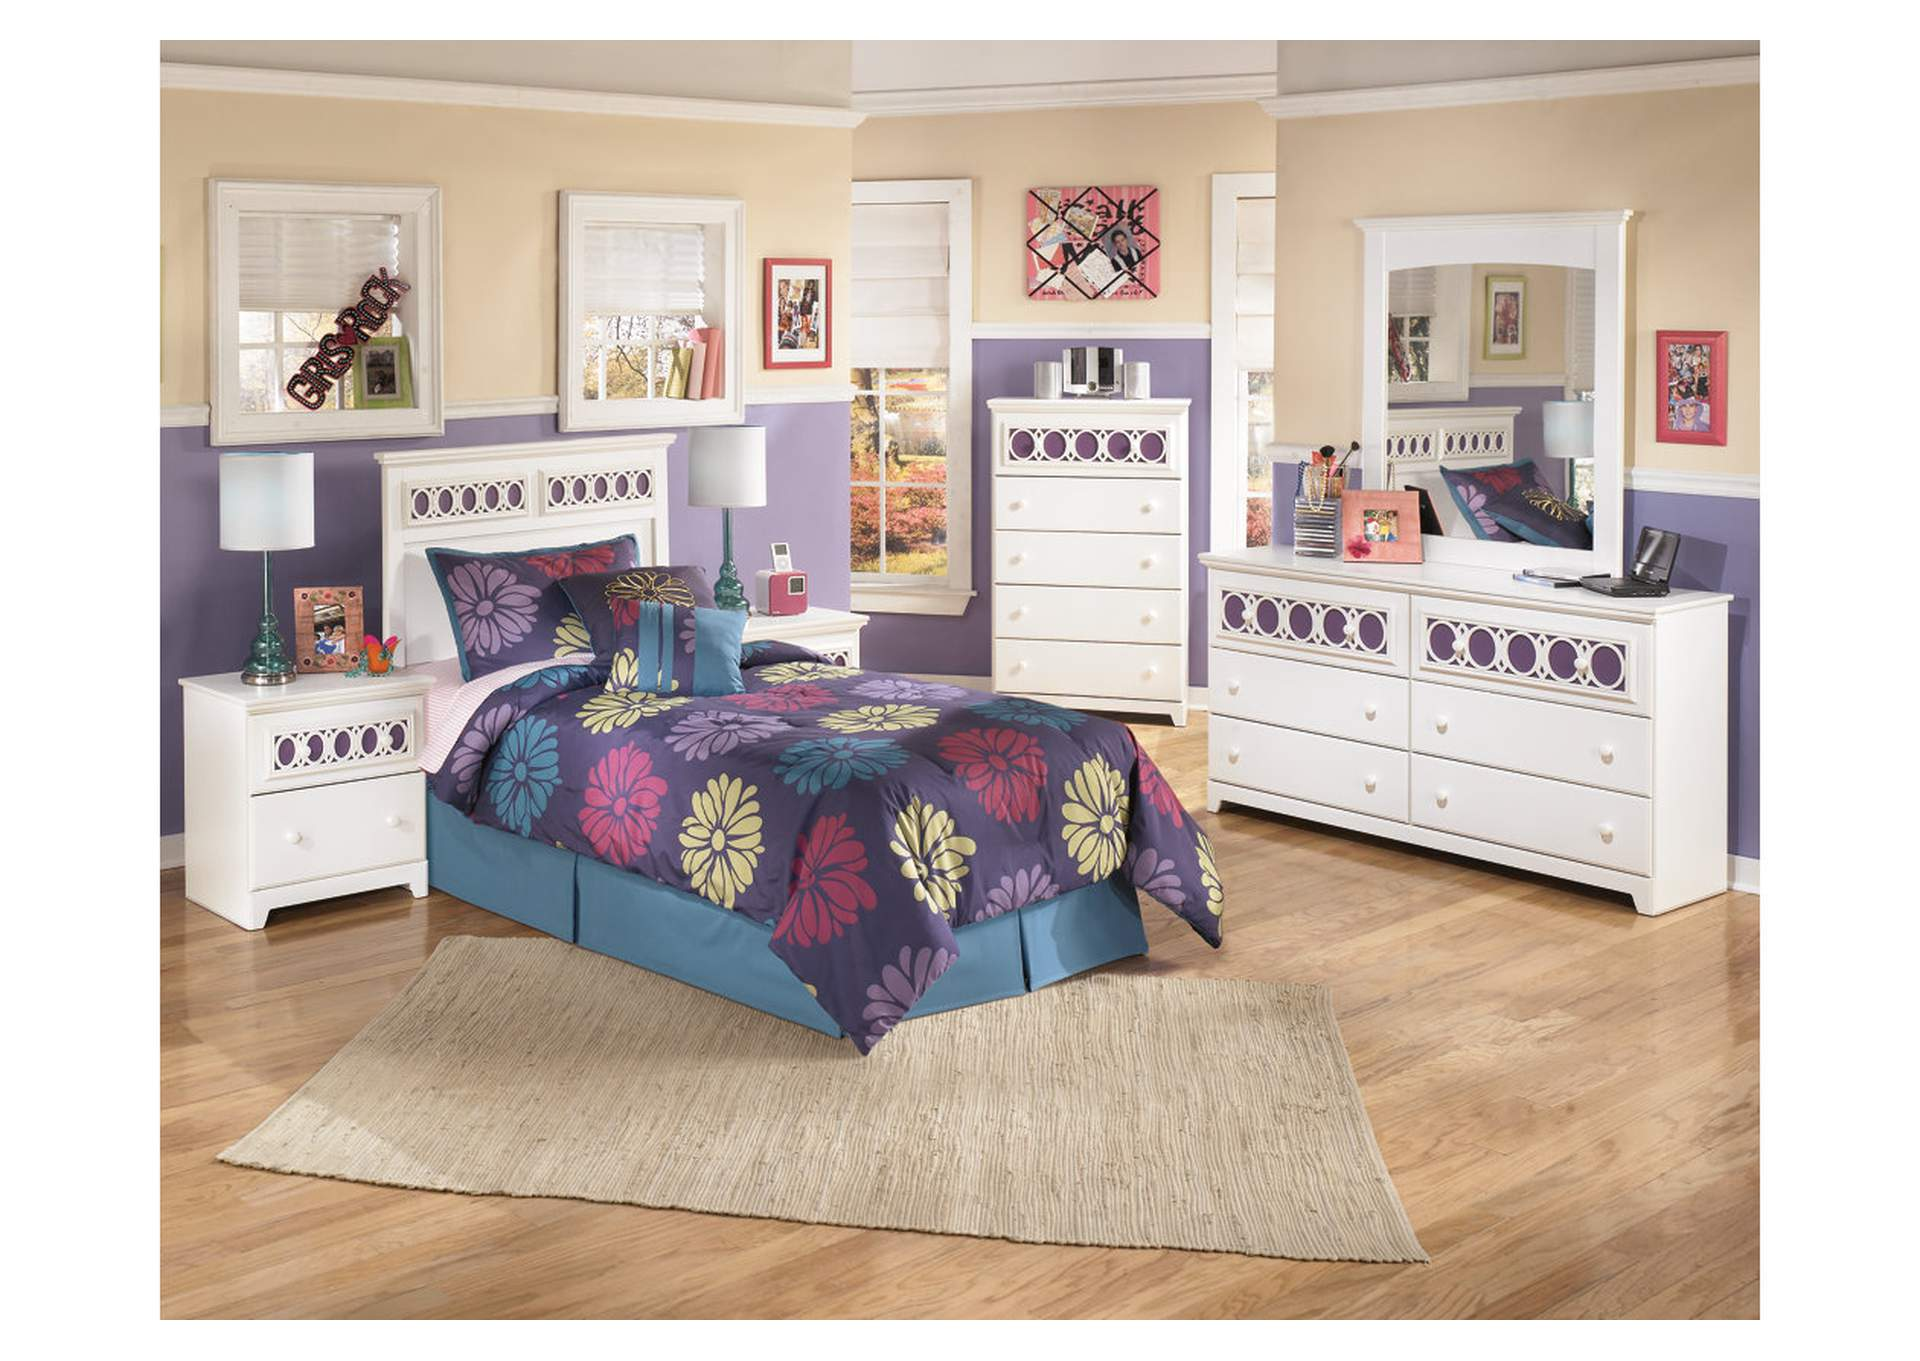 Zayley Twin Panel Headboard w/Dresser, Mirror, Drawer Chest & Nightstand,Signature Design by Ashley